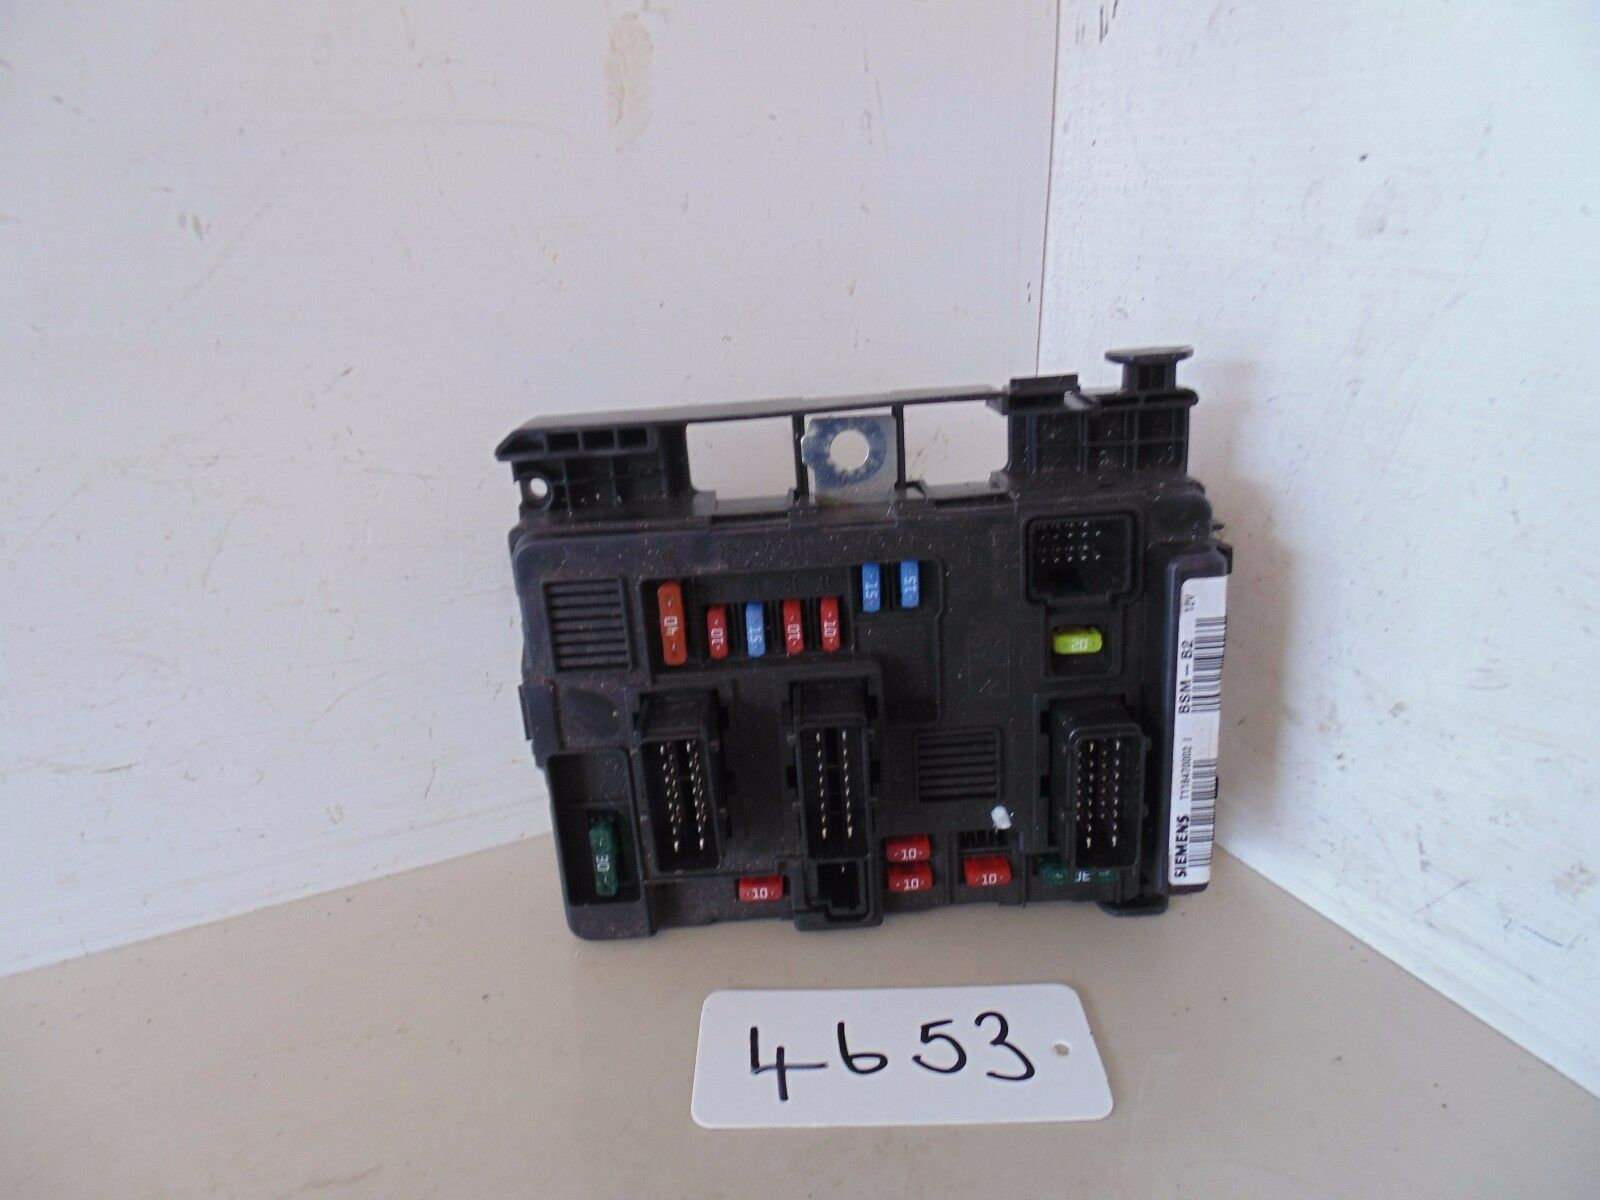 Peugeot Partner 206 Van Under Bonnet Fuse Box Siemens 9643498980 Genuine  Part 1 of 2FREE Shipping ...